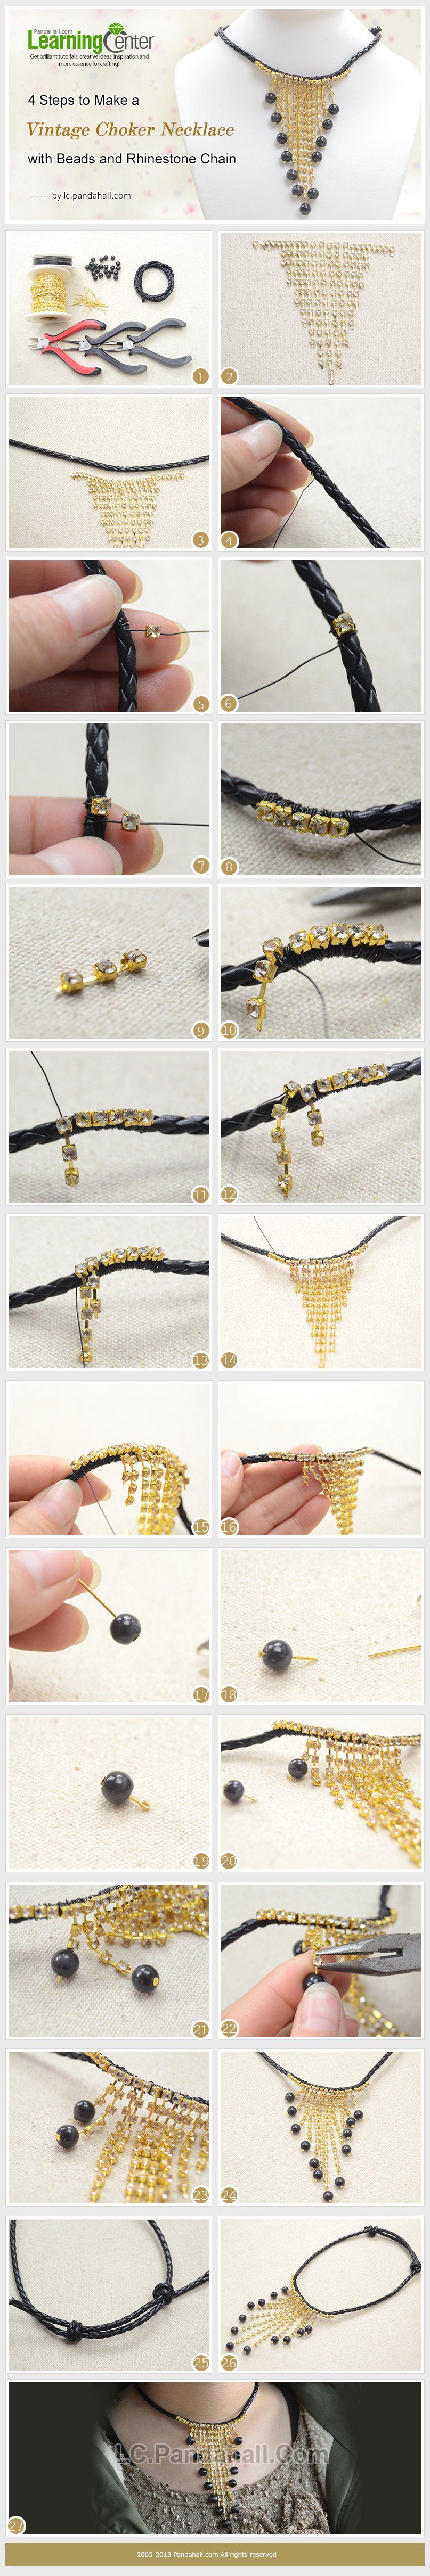 4 Steps to Make a Vintage Choker Necklace with Beads and ...